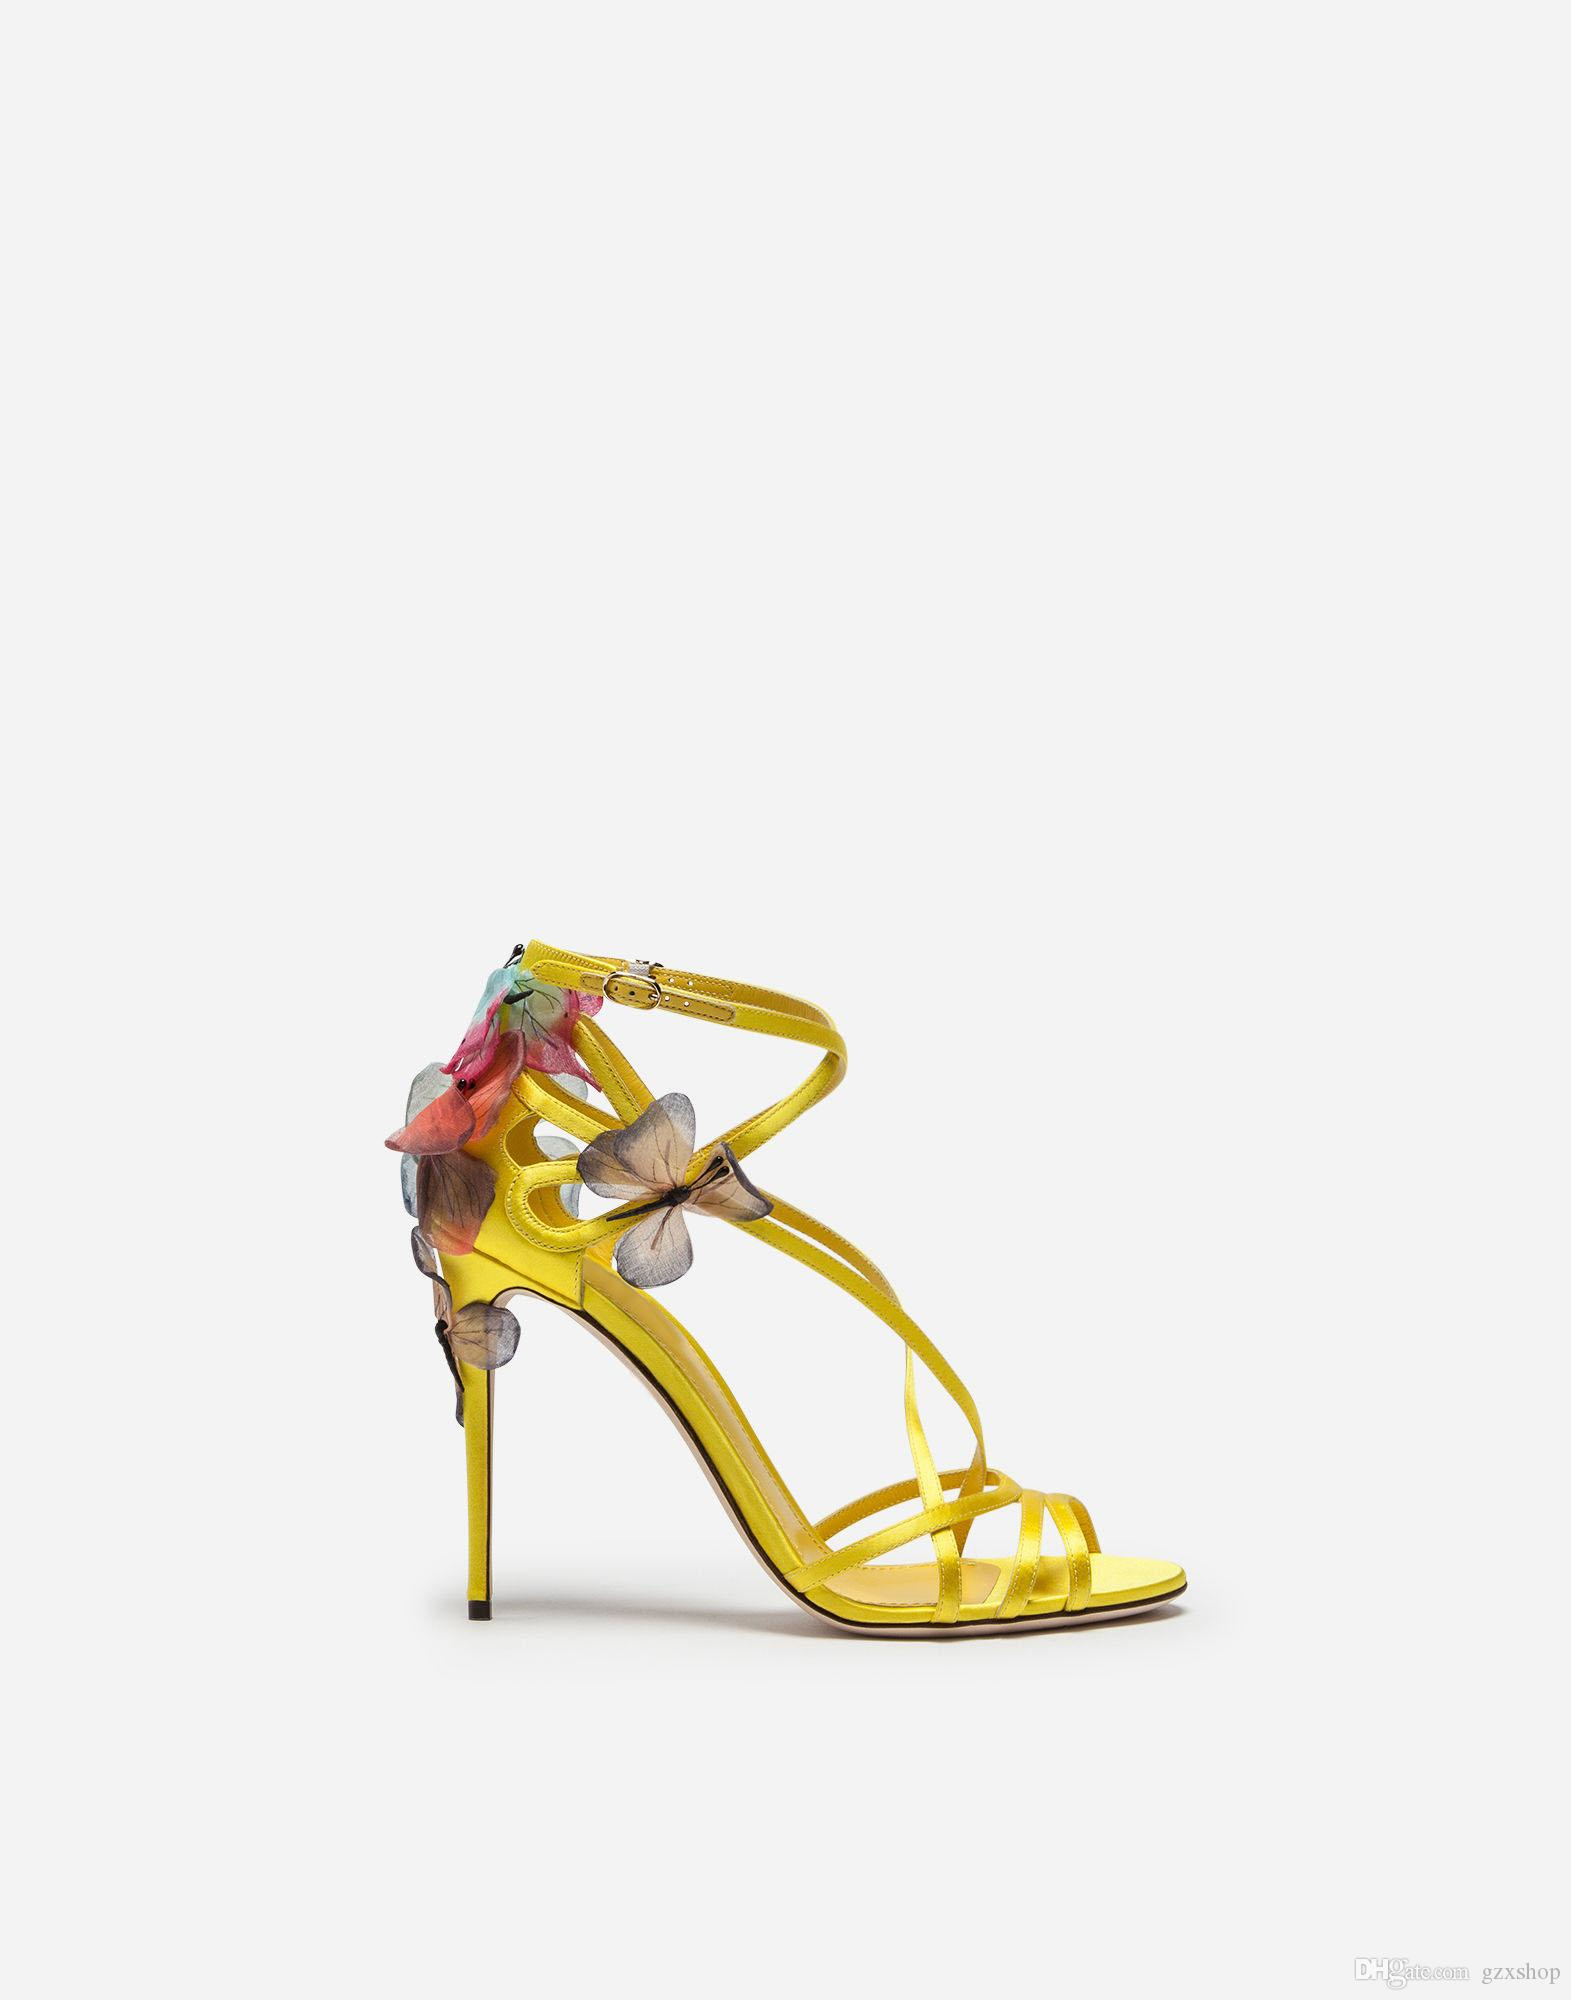 Summer Beautiful Women Ankle Bowtie One Strap Sandals Yellow Pink Thin Heel Ankle Wrap High Heel Sandals Wedding Party Shoes Woman